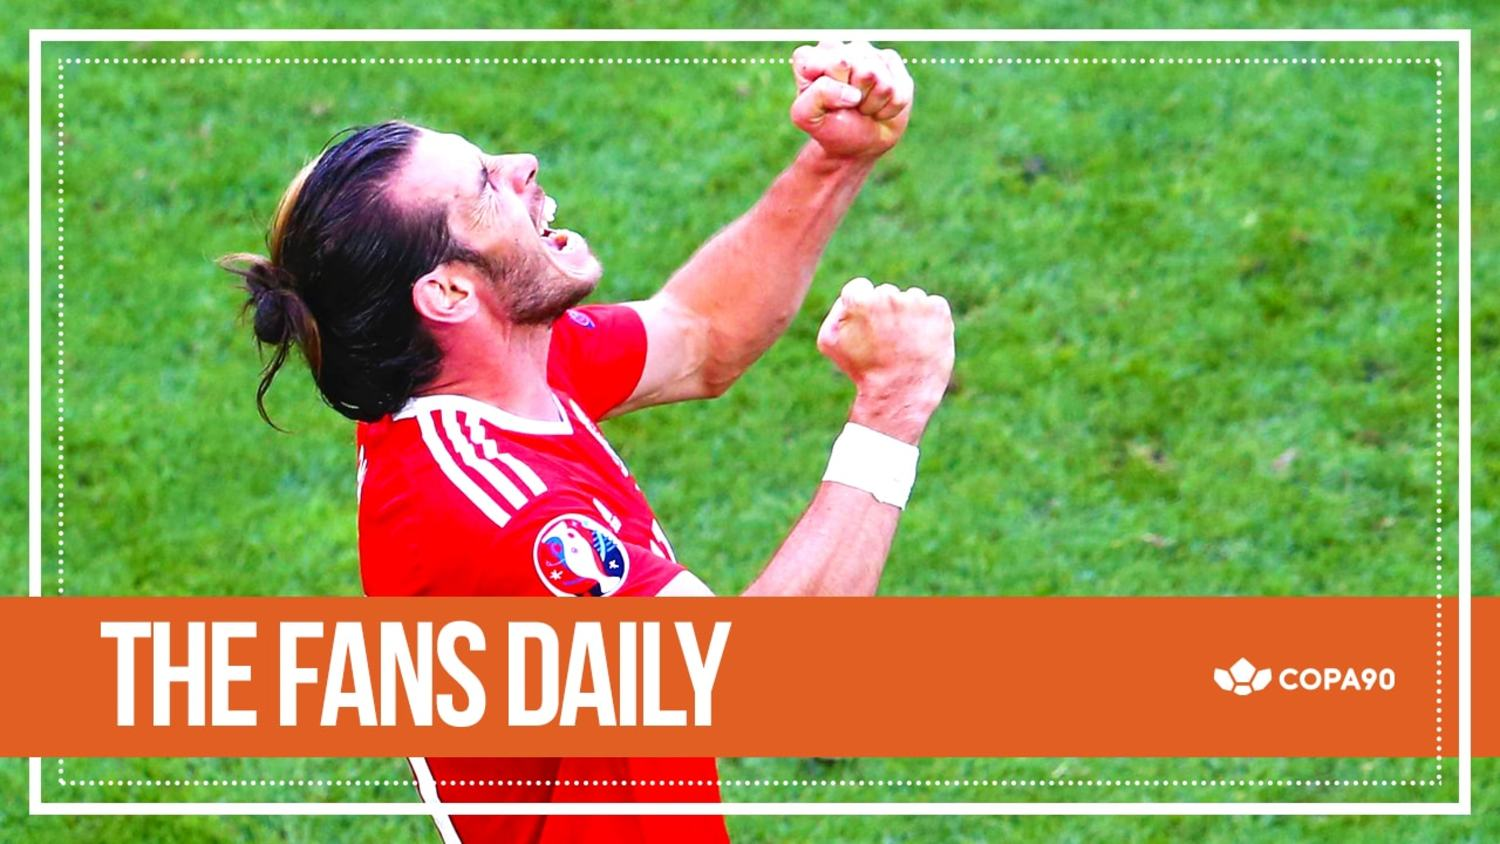 Bale Strikes While England Stumble - The Fans Daily